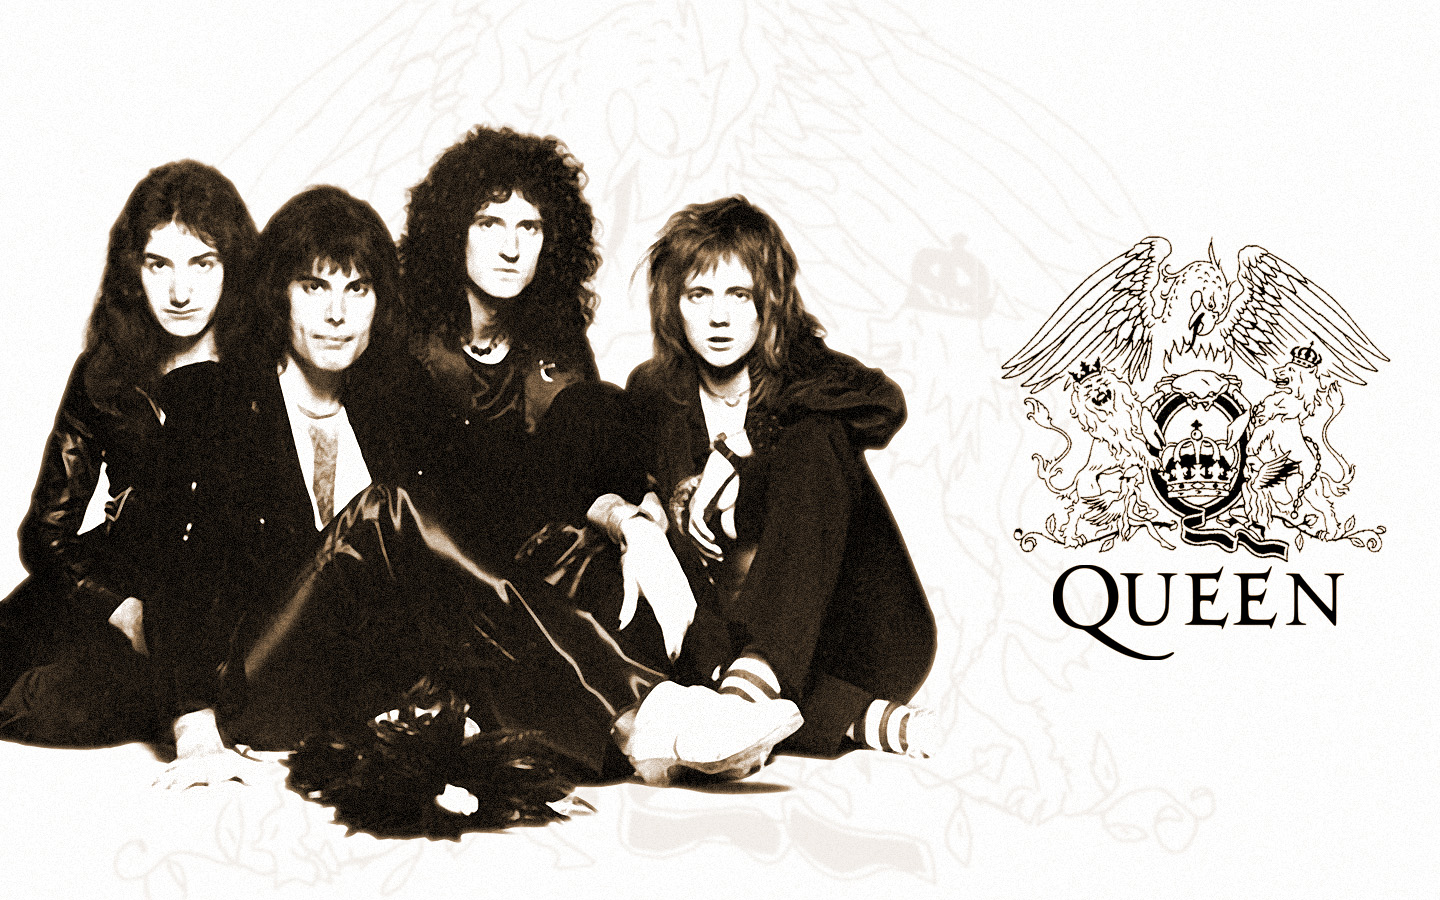 Rock Band Wallpapers The Greatest Band quotQueenquot Wallpaper 1440x900